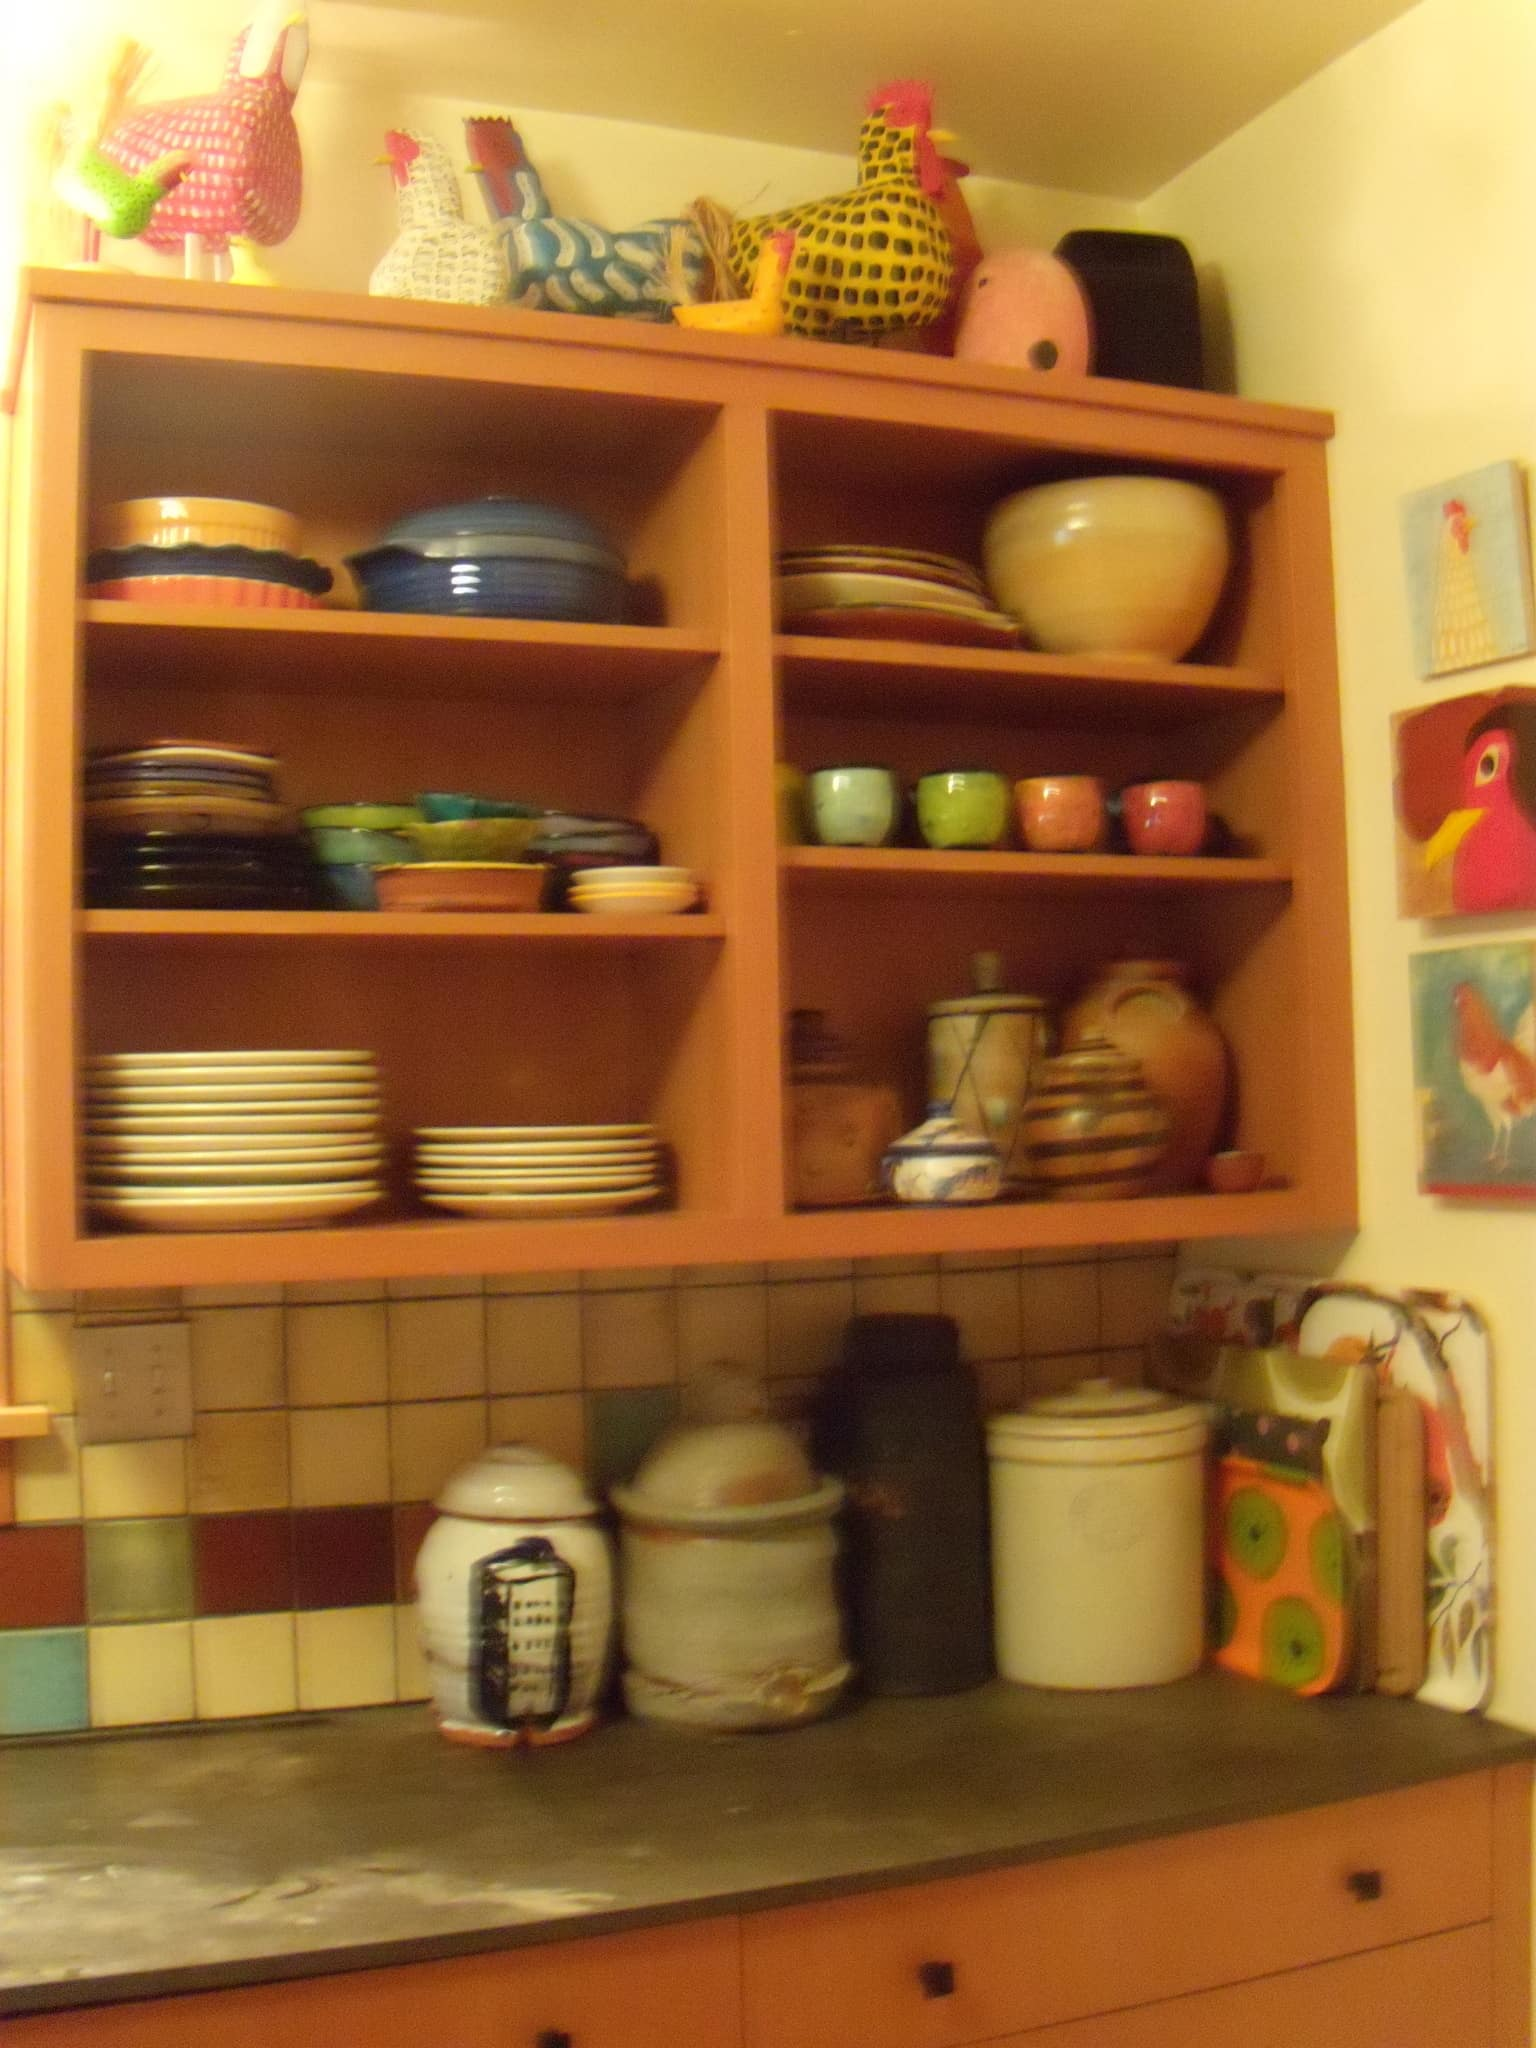 Tracy's Colorful Portland Bungalow Kitchen: gallery image 4